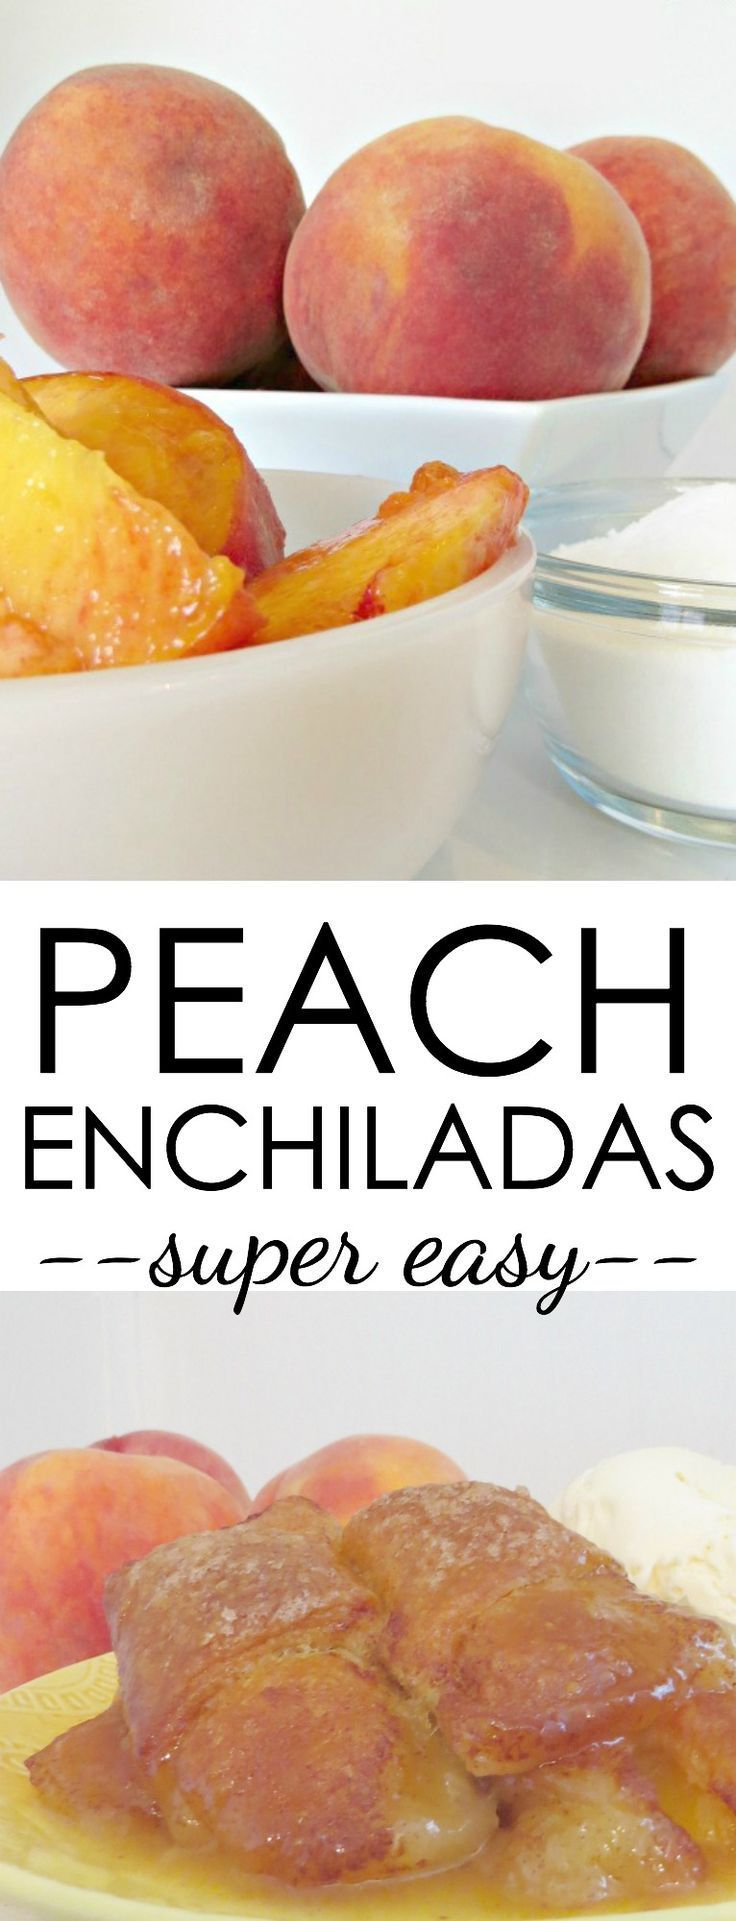 Try this super easy peach dessert that's filled with juicy fresh peaches and wrapped in a crescent roll crust. It's delicious! Peach Enchiladas Recipe Dessert